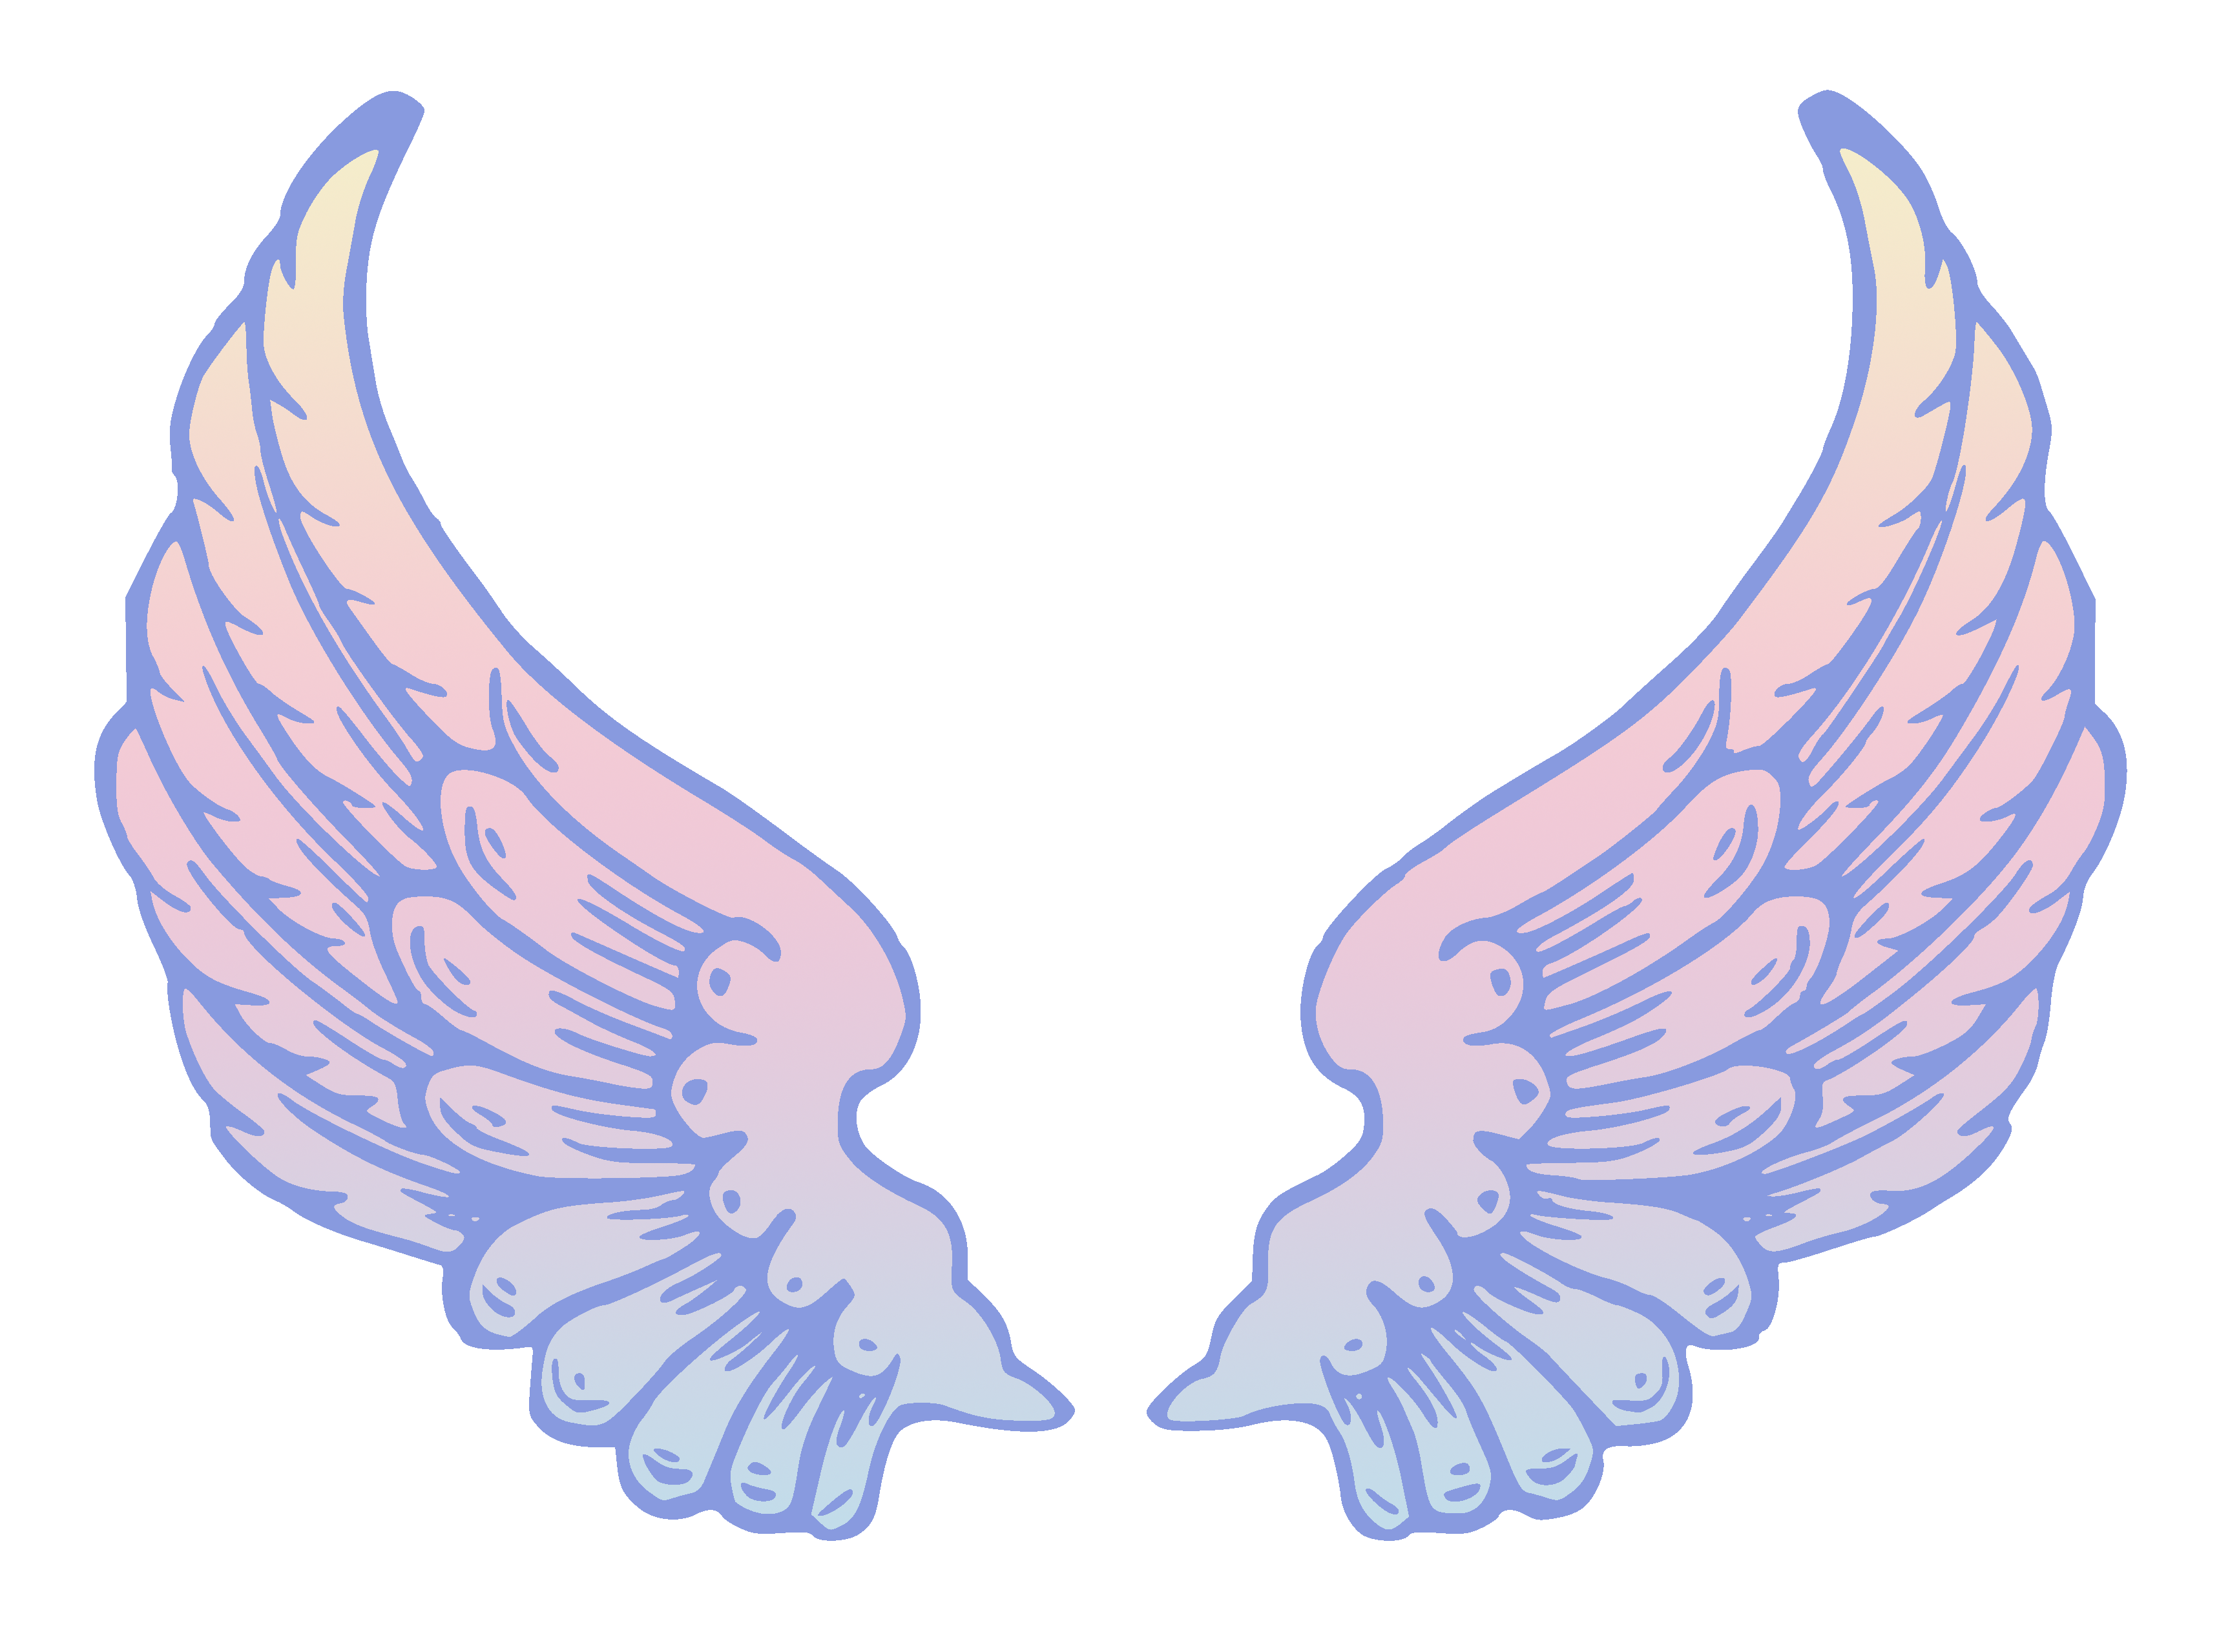 Kawaii angel wings png. Lightwing co page octopus